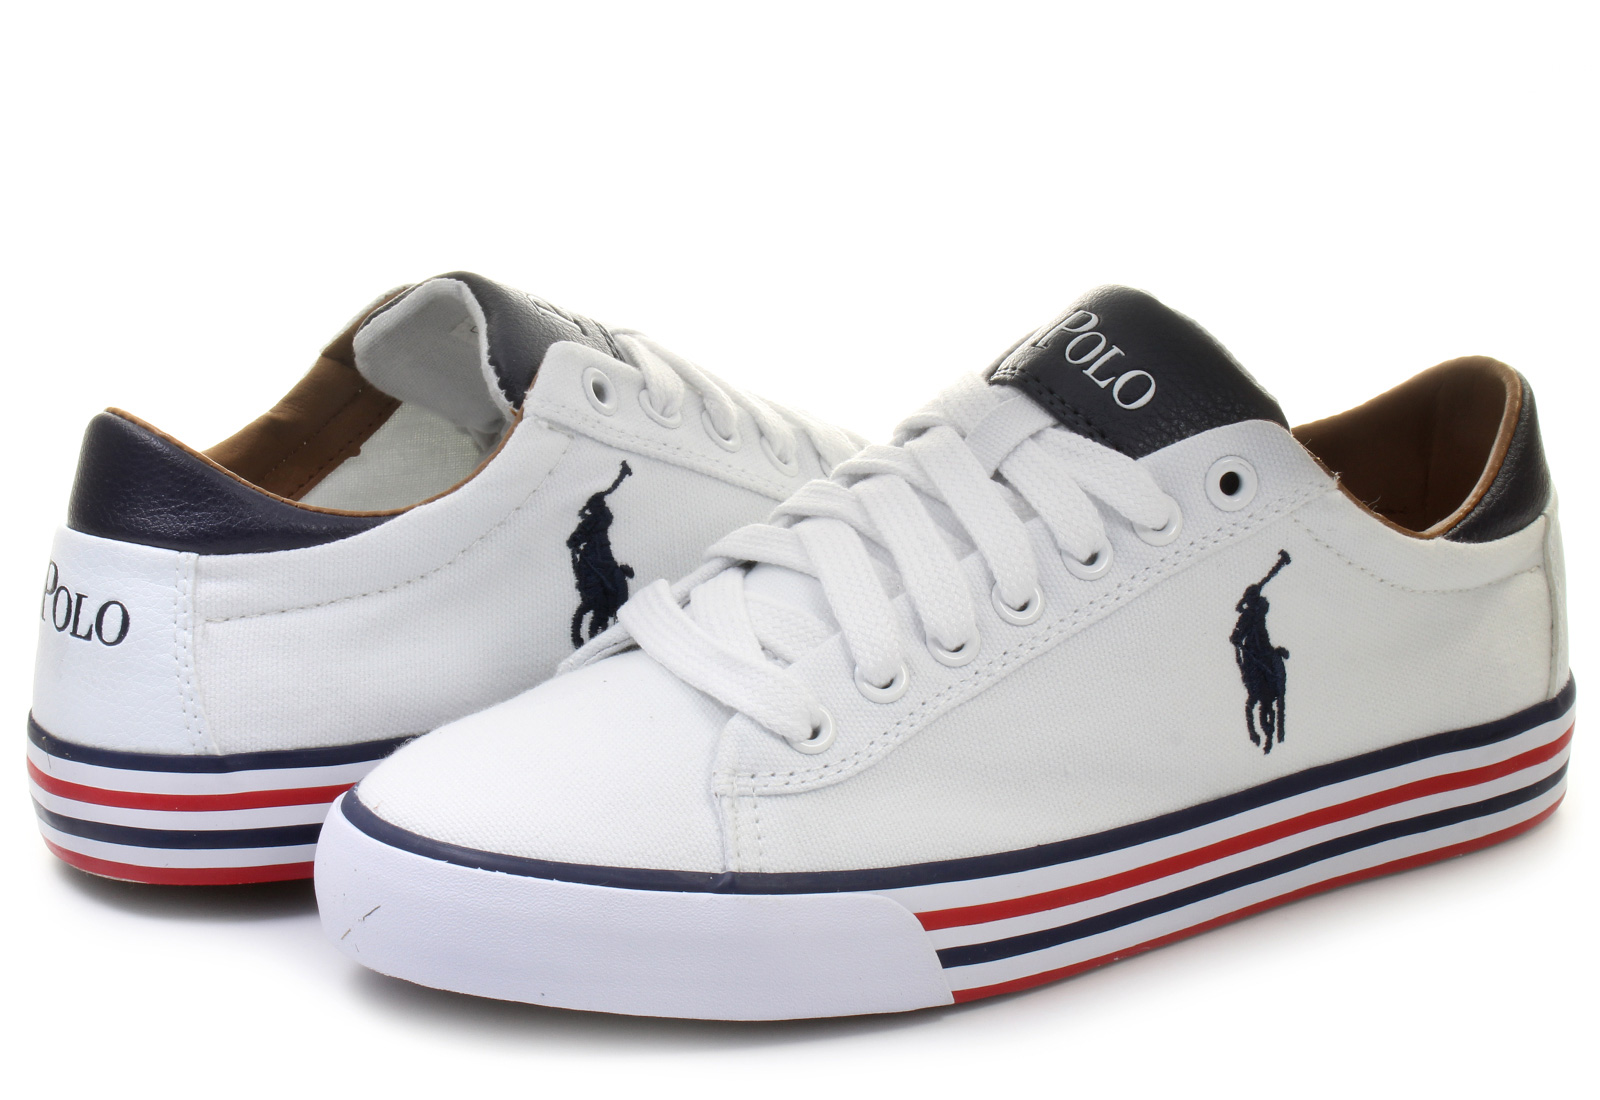 polo ralph lauren shoes women 70 + 20%